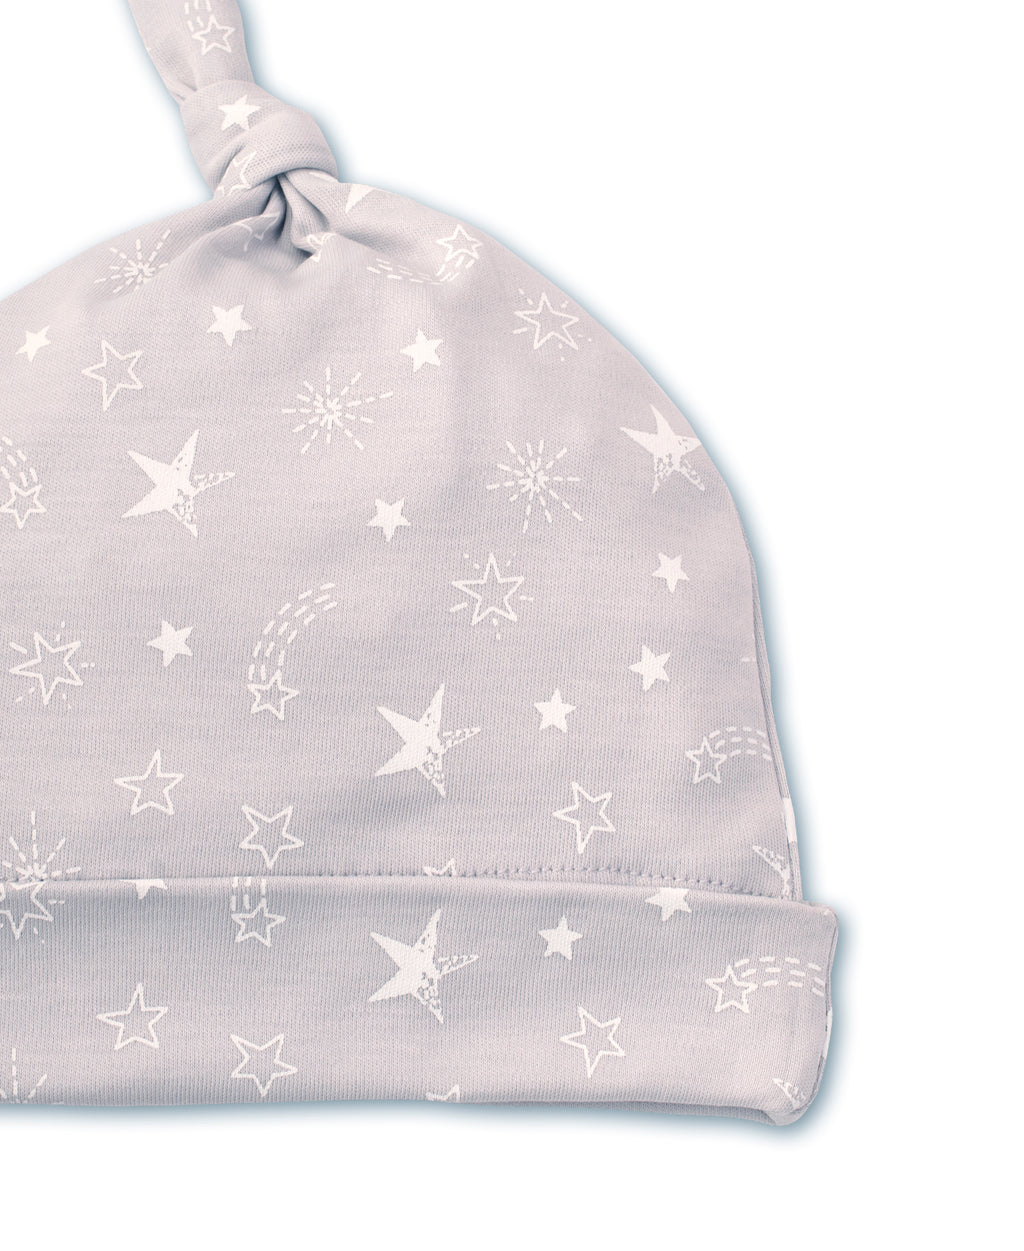 Starry Sky Silver Print Hat